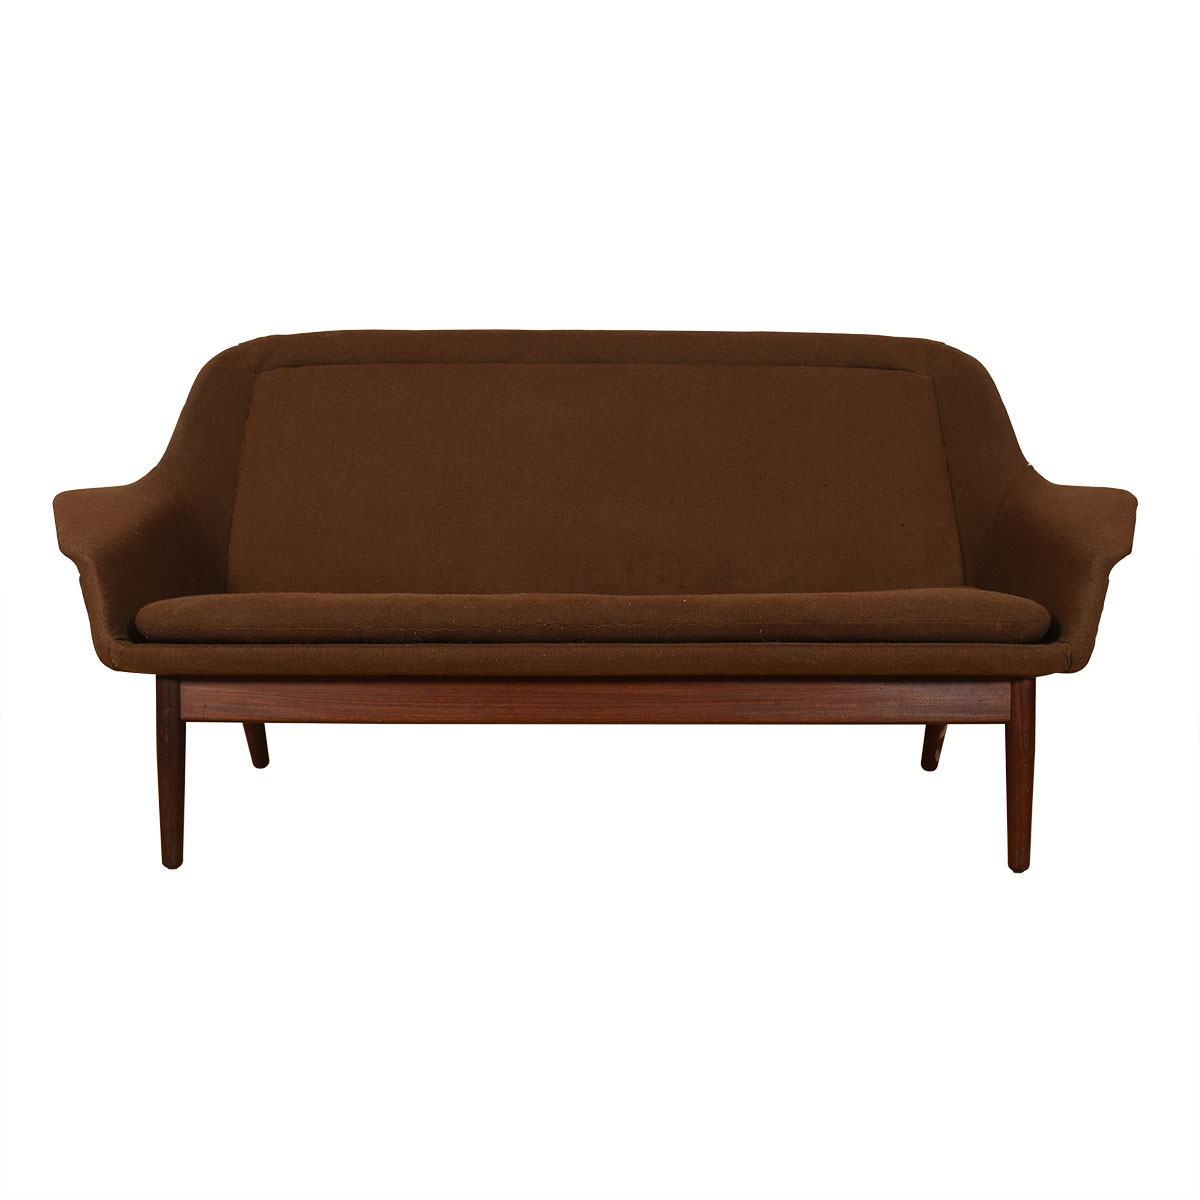 Rare Model for George Tanier — Arne Vodder Upholstered Brown Sofa